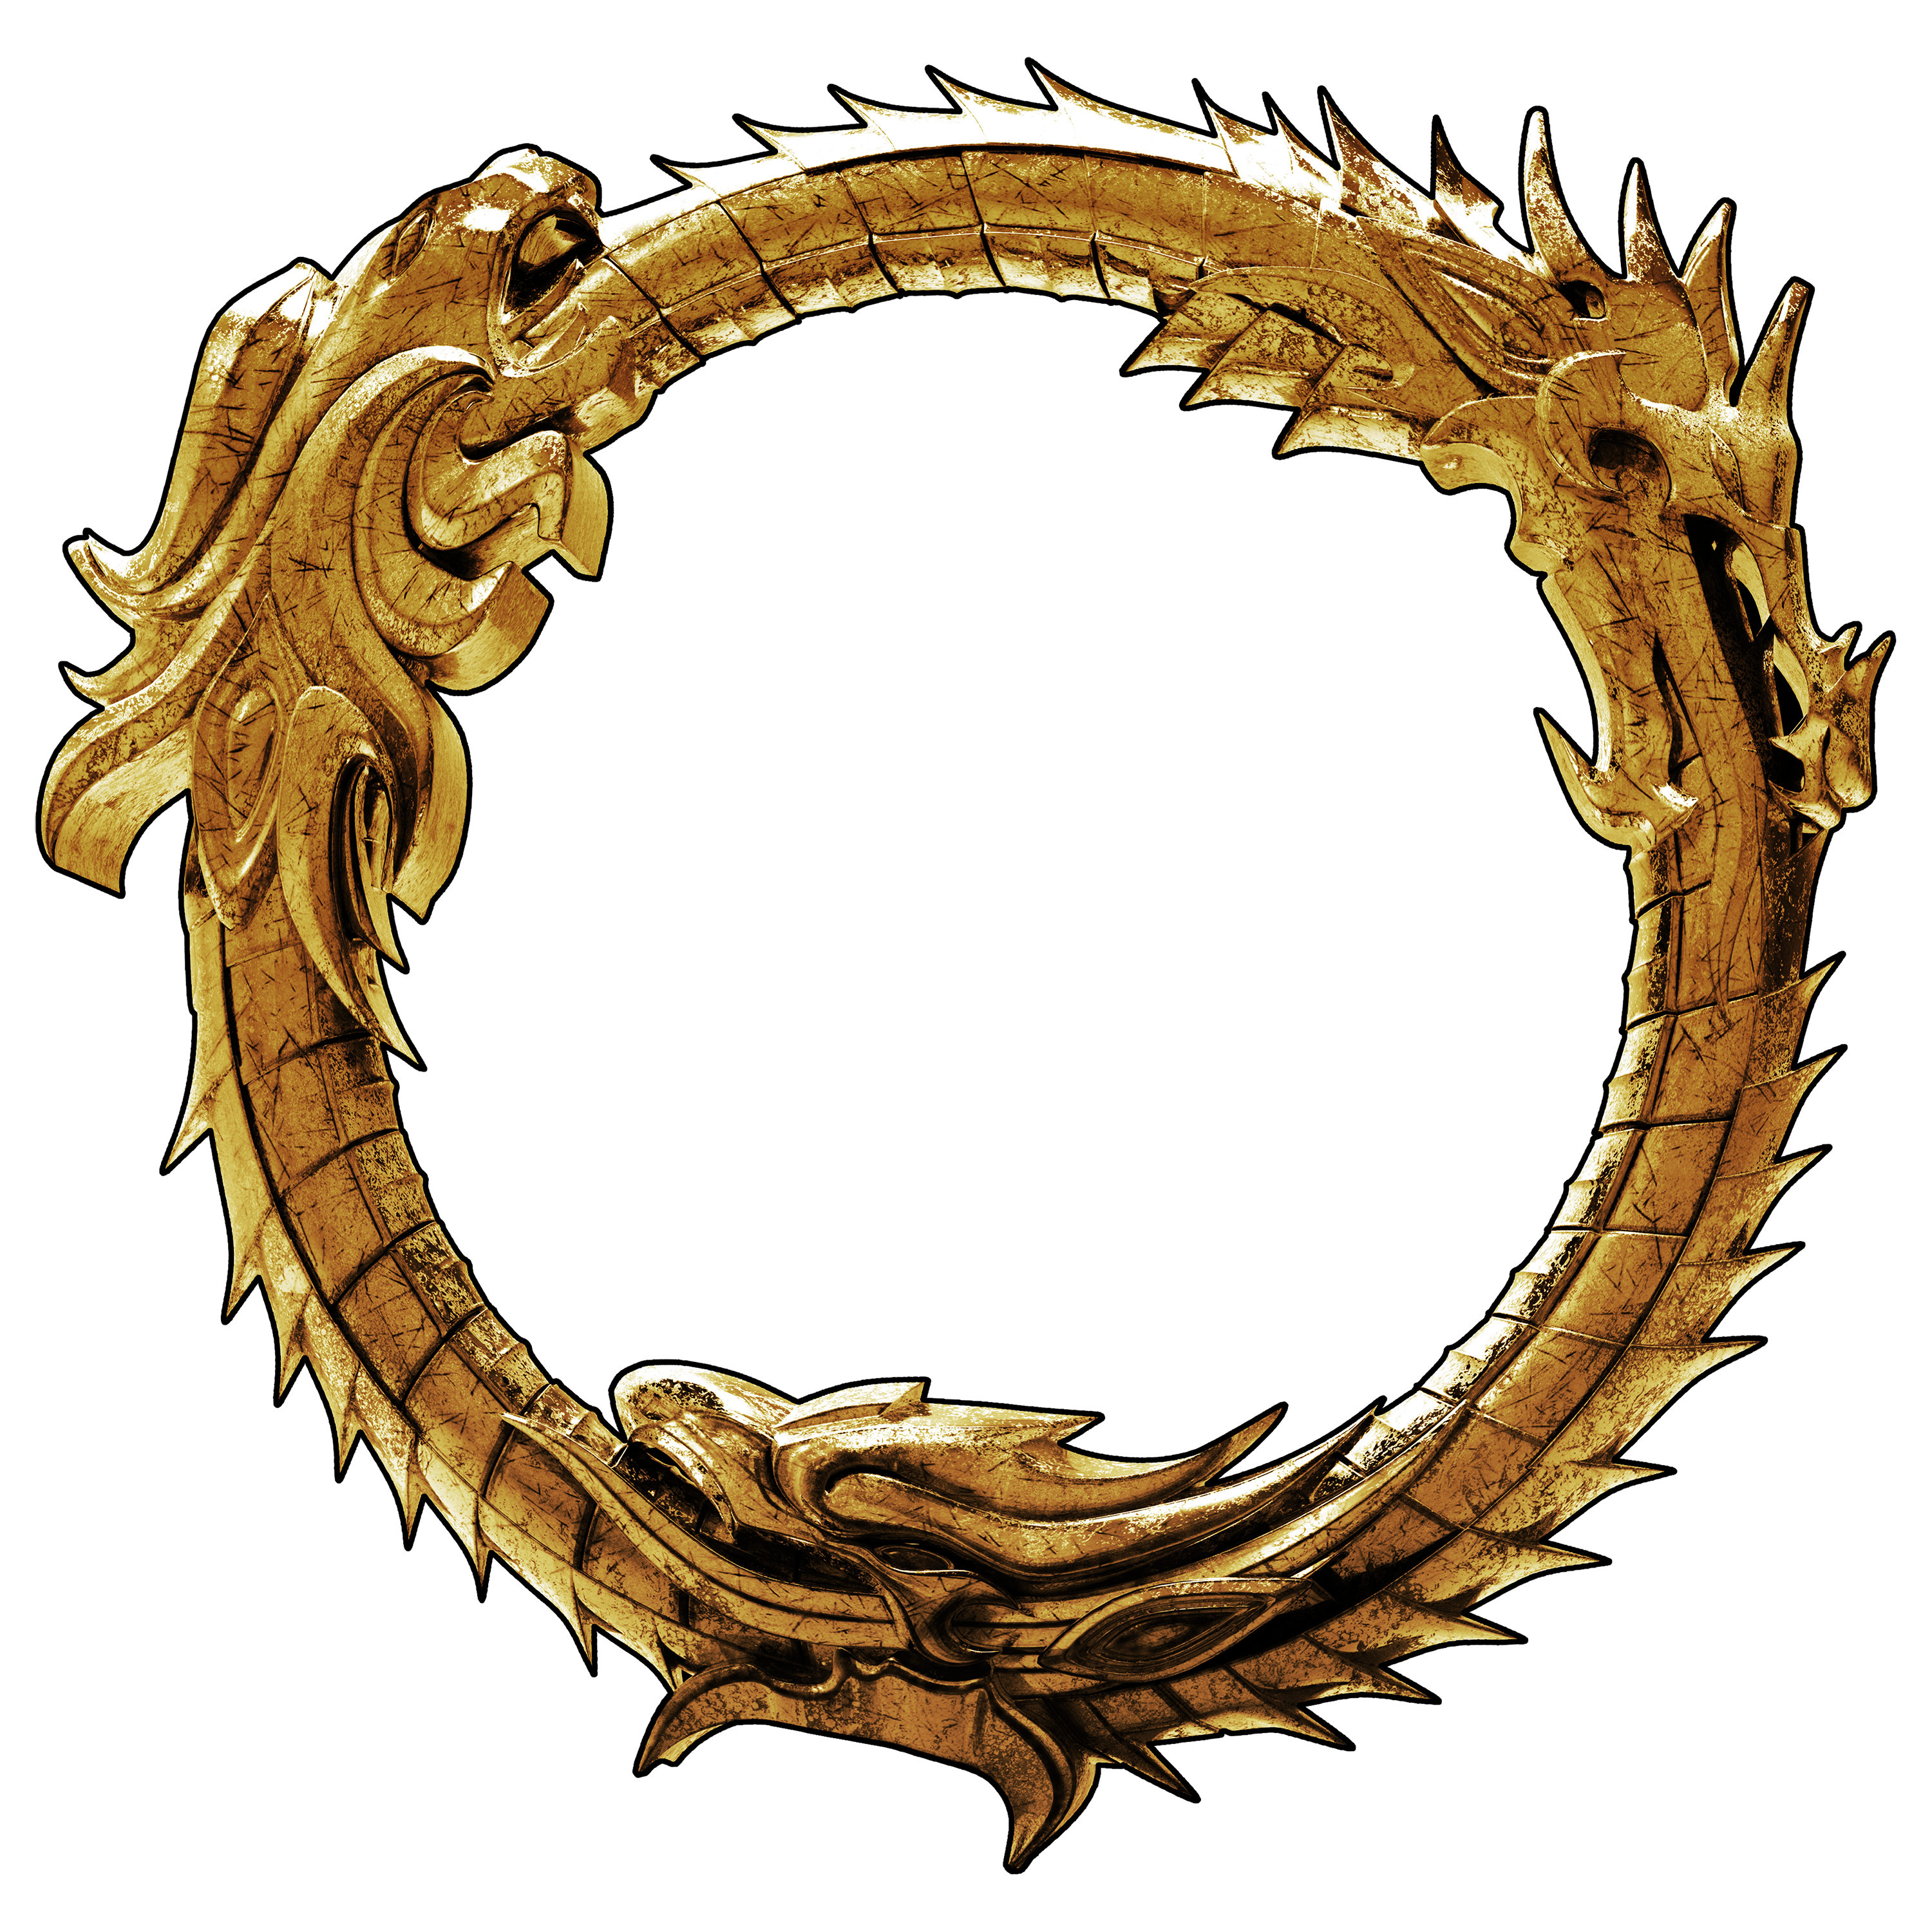 . ClipartLook.com 3D - The Elder Scrolls-. ClipartLook.com 3D - The Elder Scrolls Online Ouroboros Logo 3 by llexandro-0